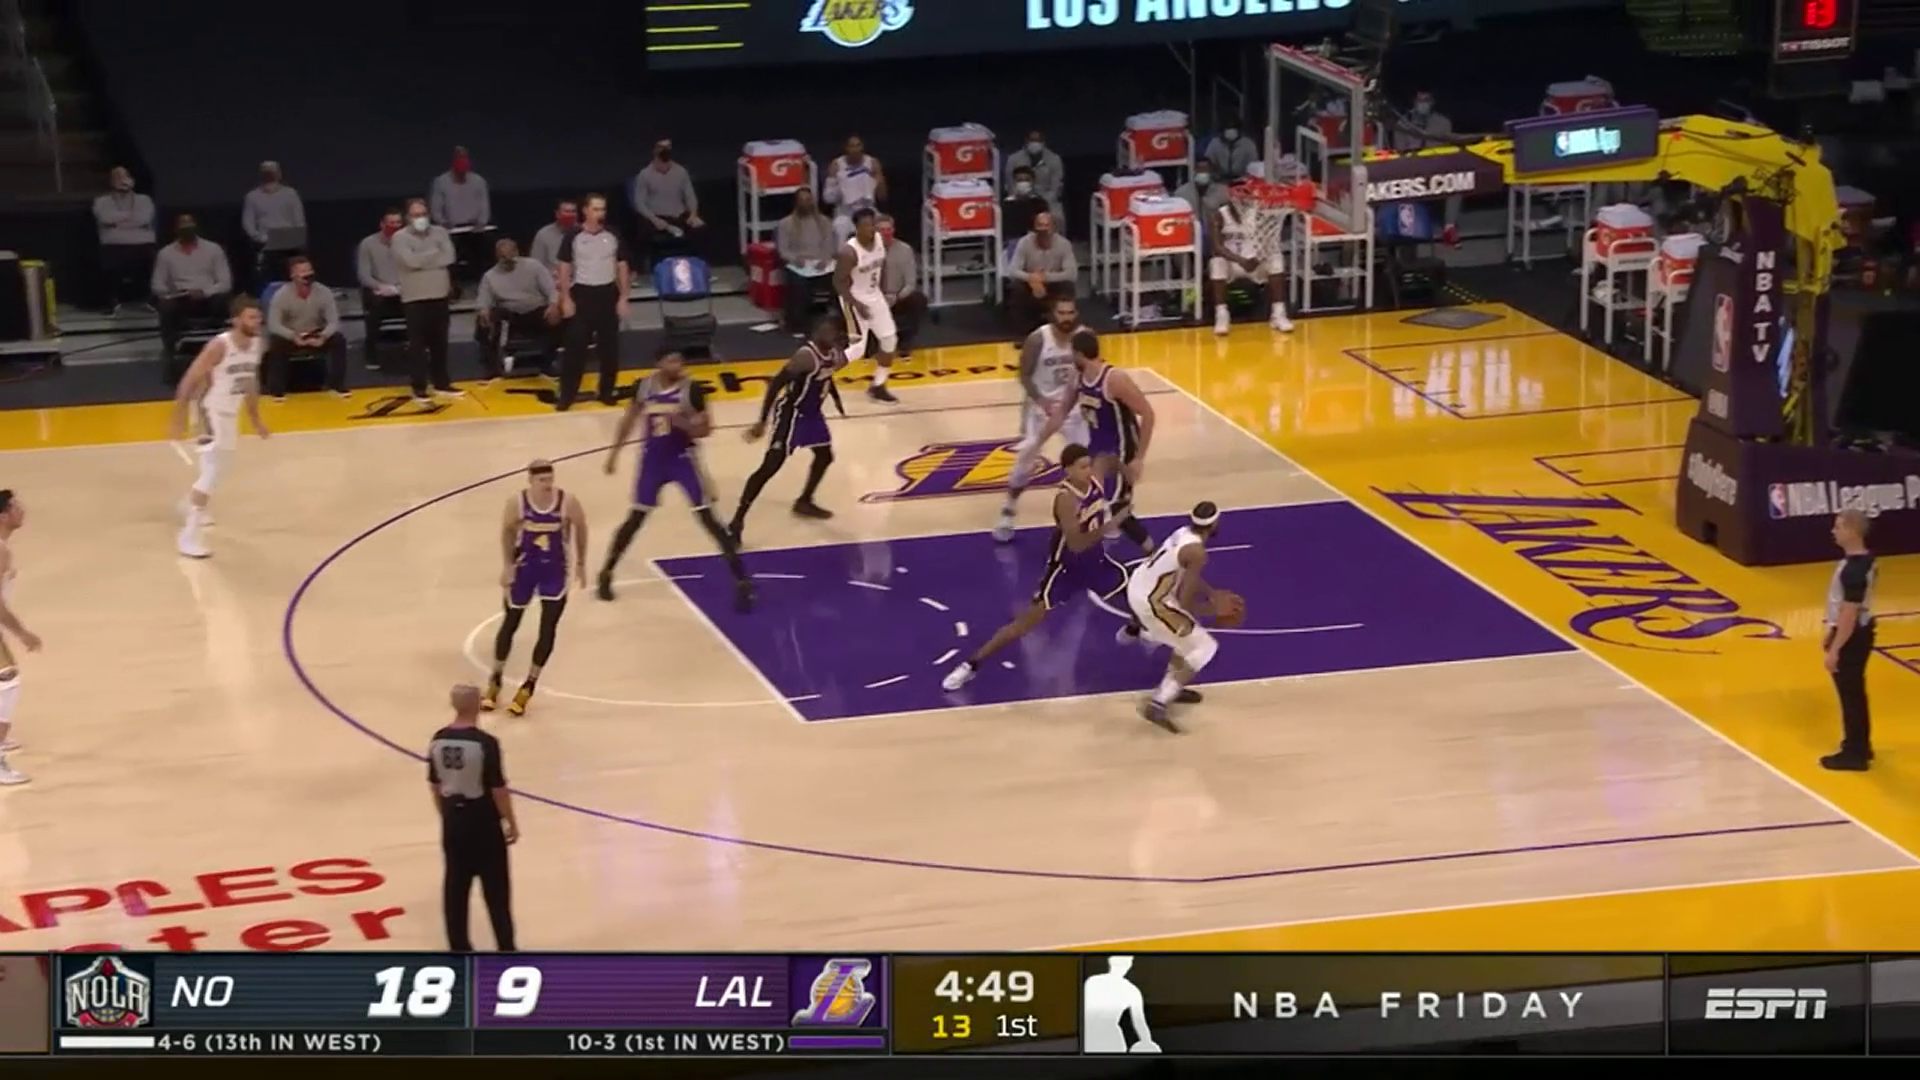 Pelicans-Lakers Highlights: Brandon Ingram spin and score